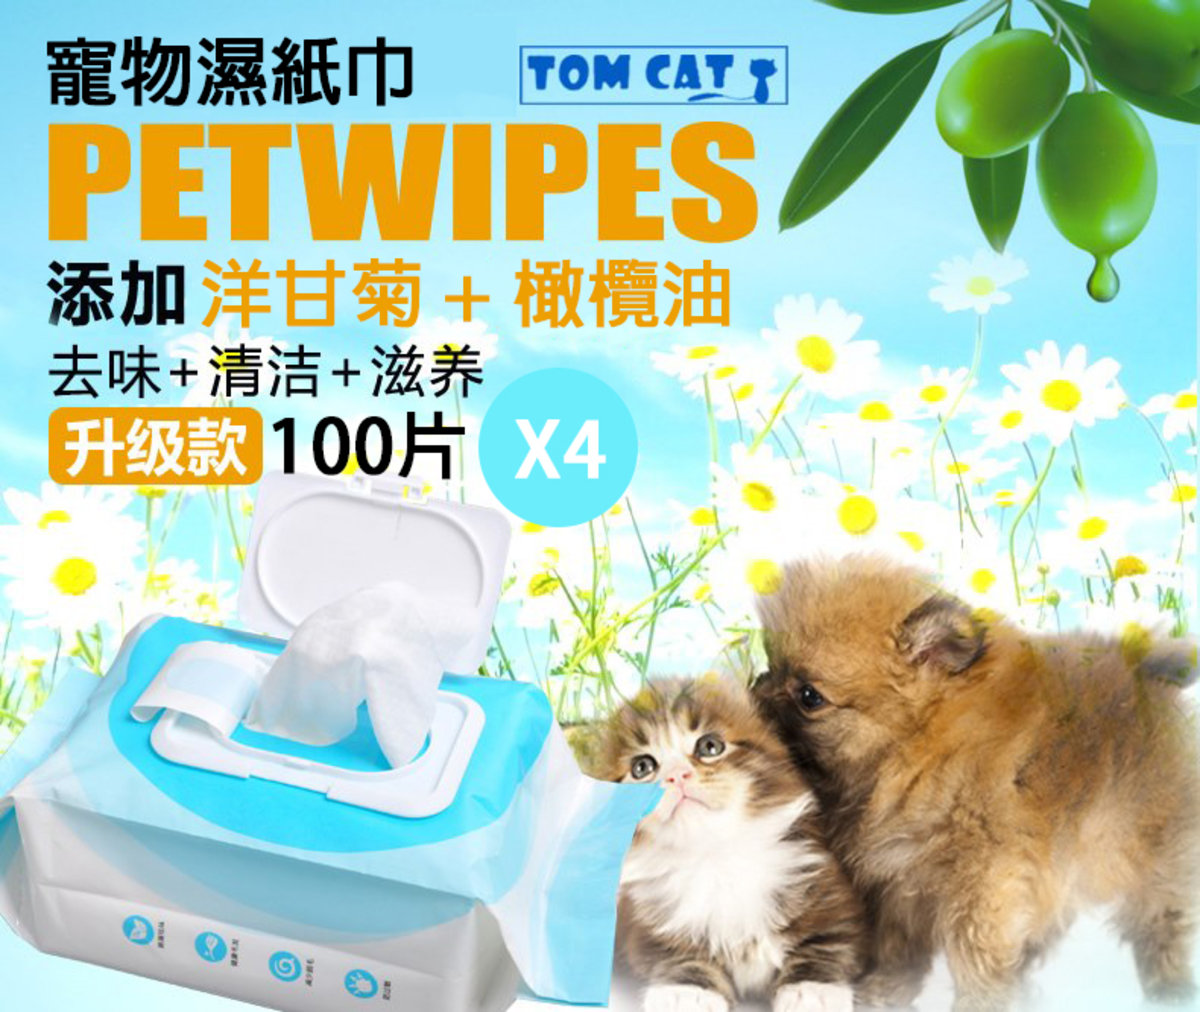 Dr. m story TOM Cat pet wiper 100pcs x 4set